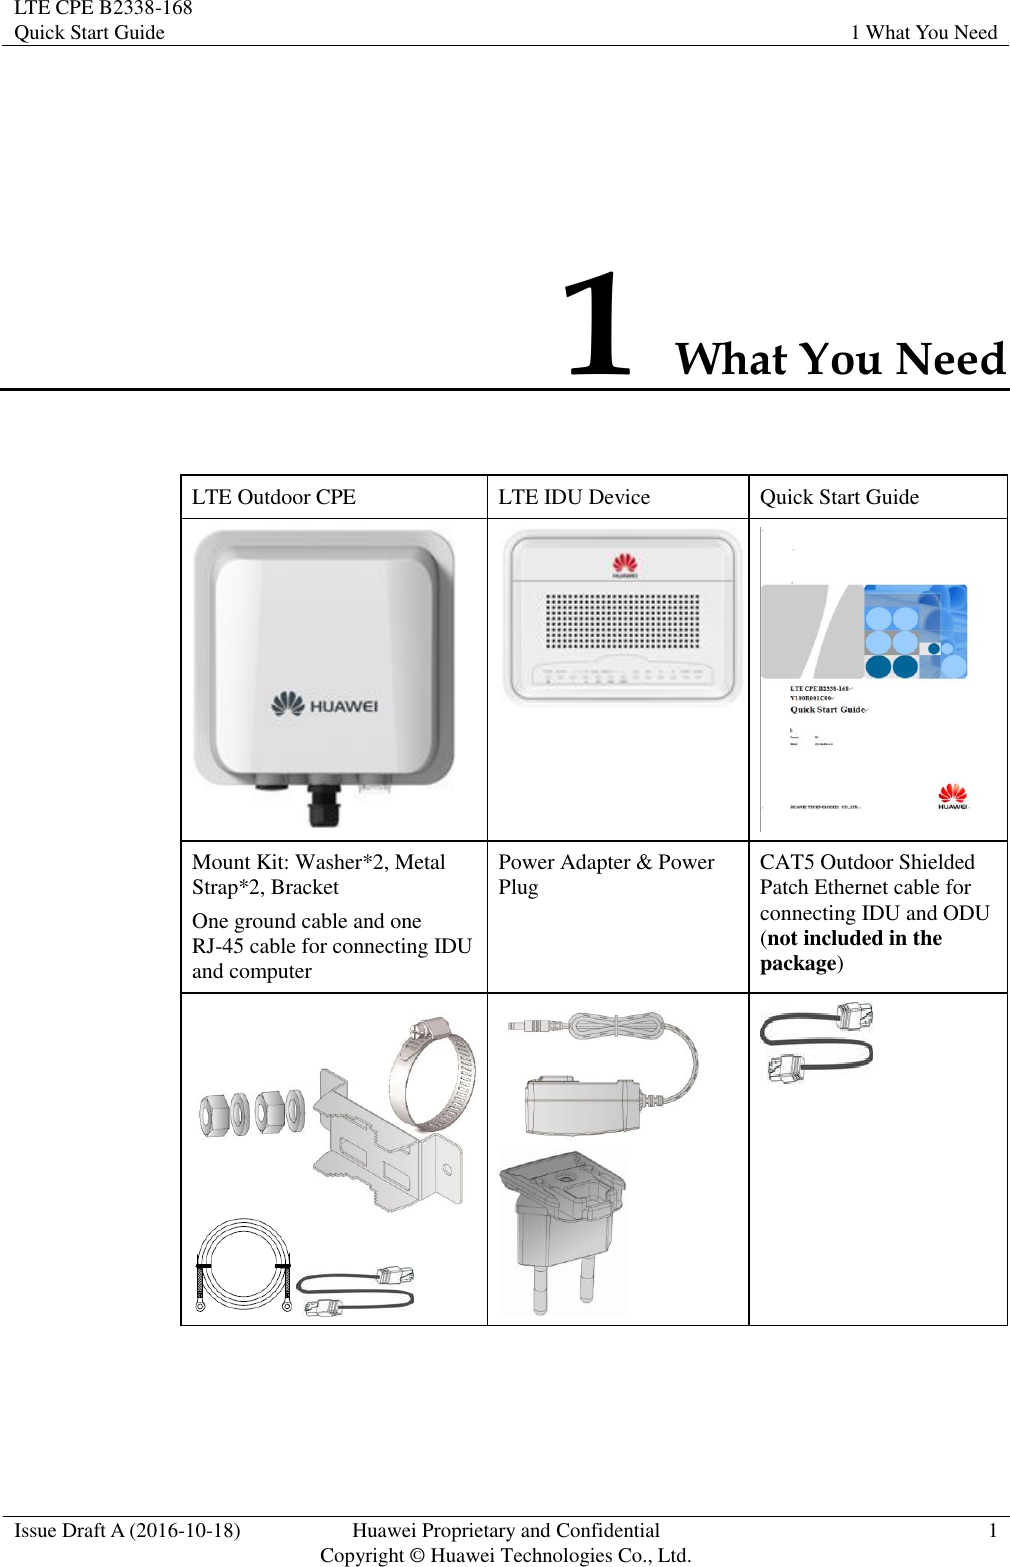 huawei user manual